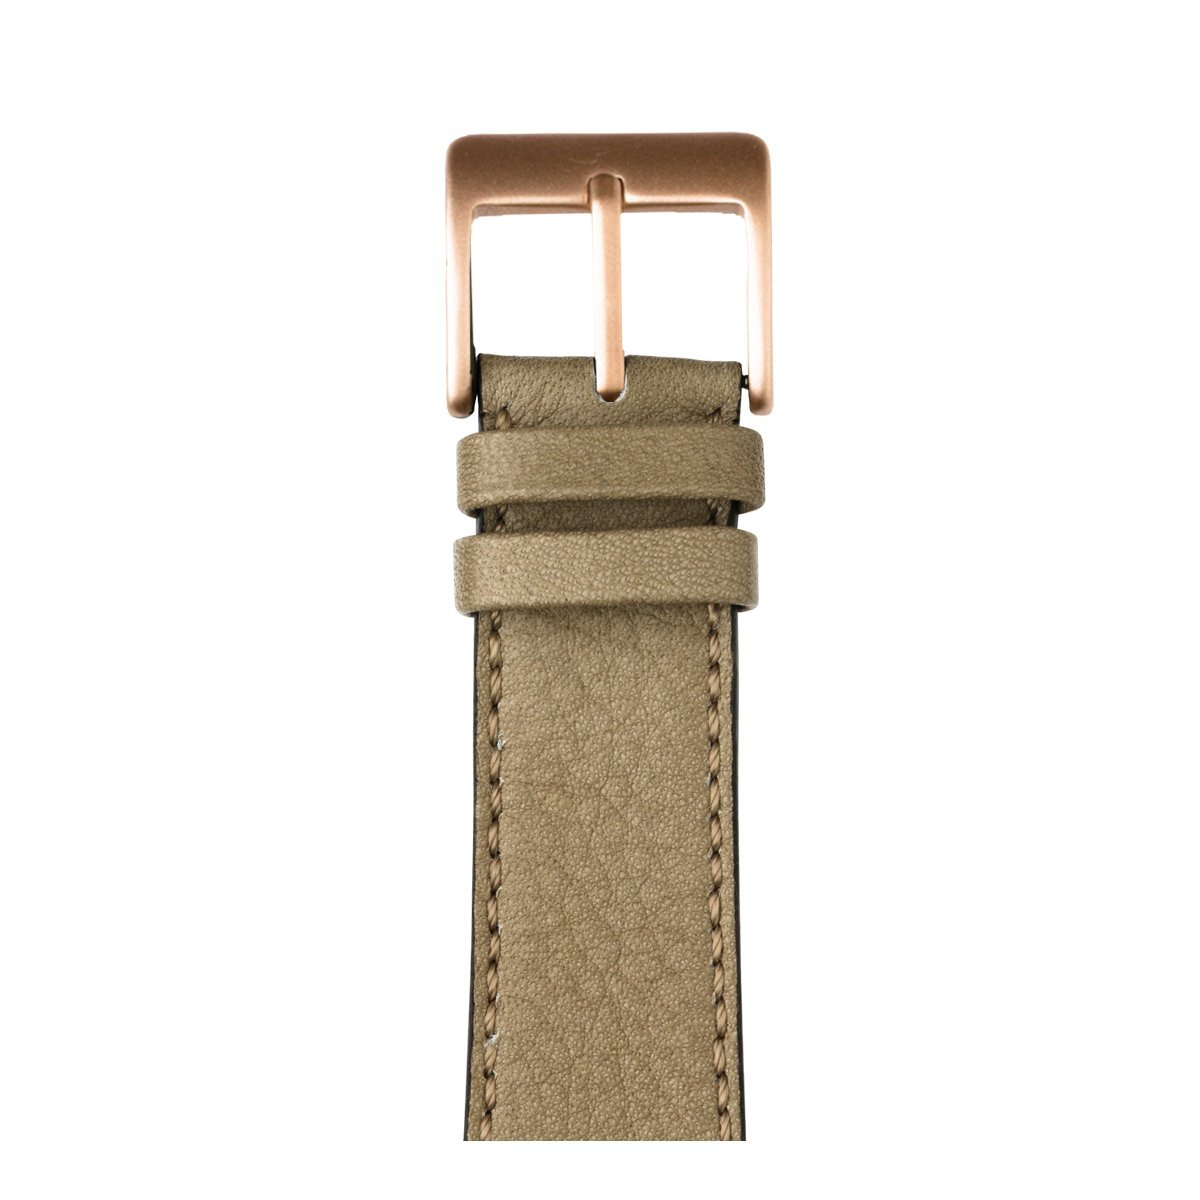 Roobaya | Premium Sauvage Leather Apple Watch Band in Light Gray | Includes Adapters matching the Color of the Apple Watch, Case Color:Rose Gold Aluminum, Size:38 mm